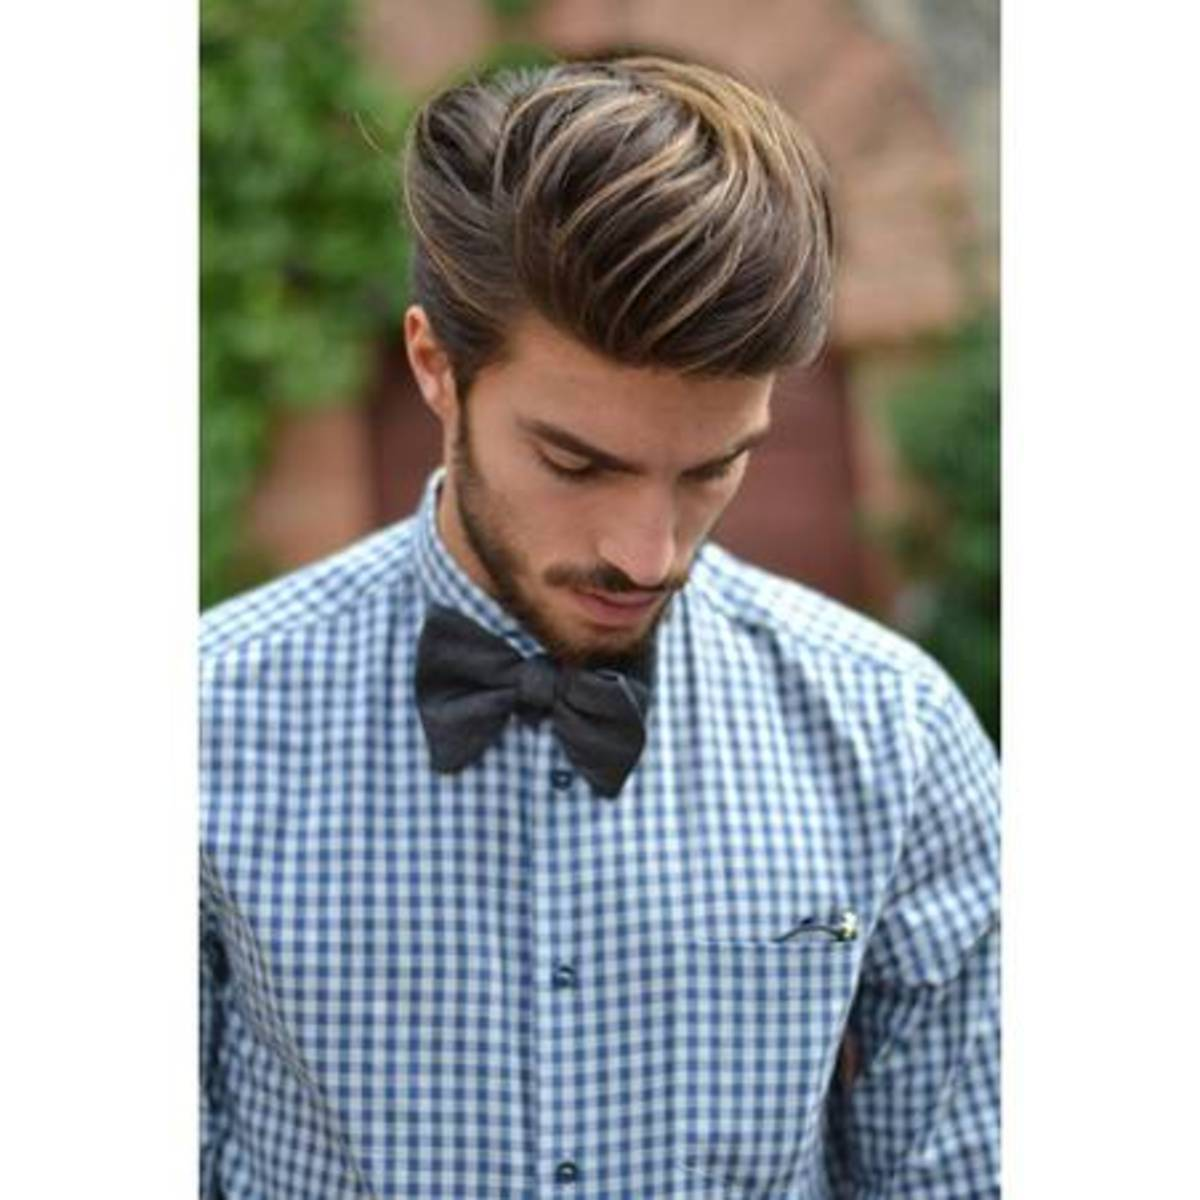 Coiffure-homme-automne-hiver-2015_reference2